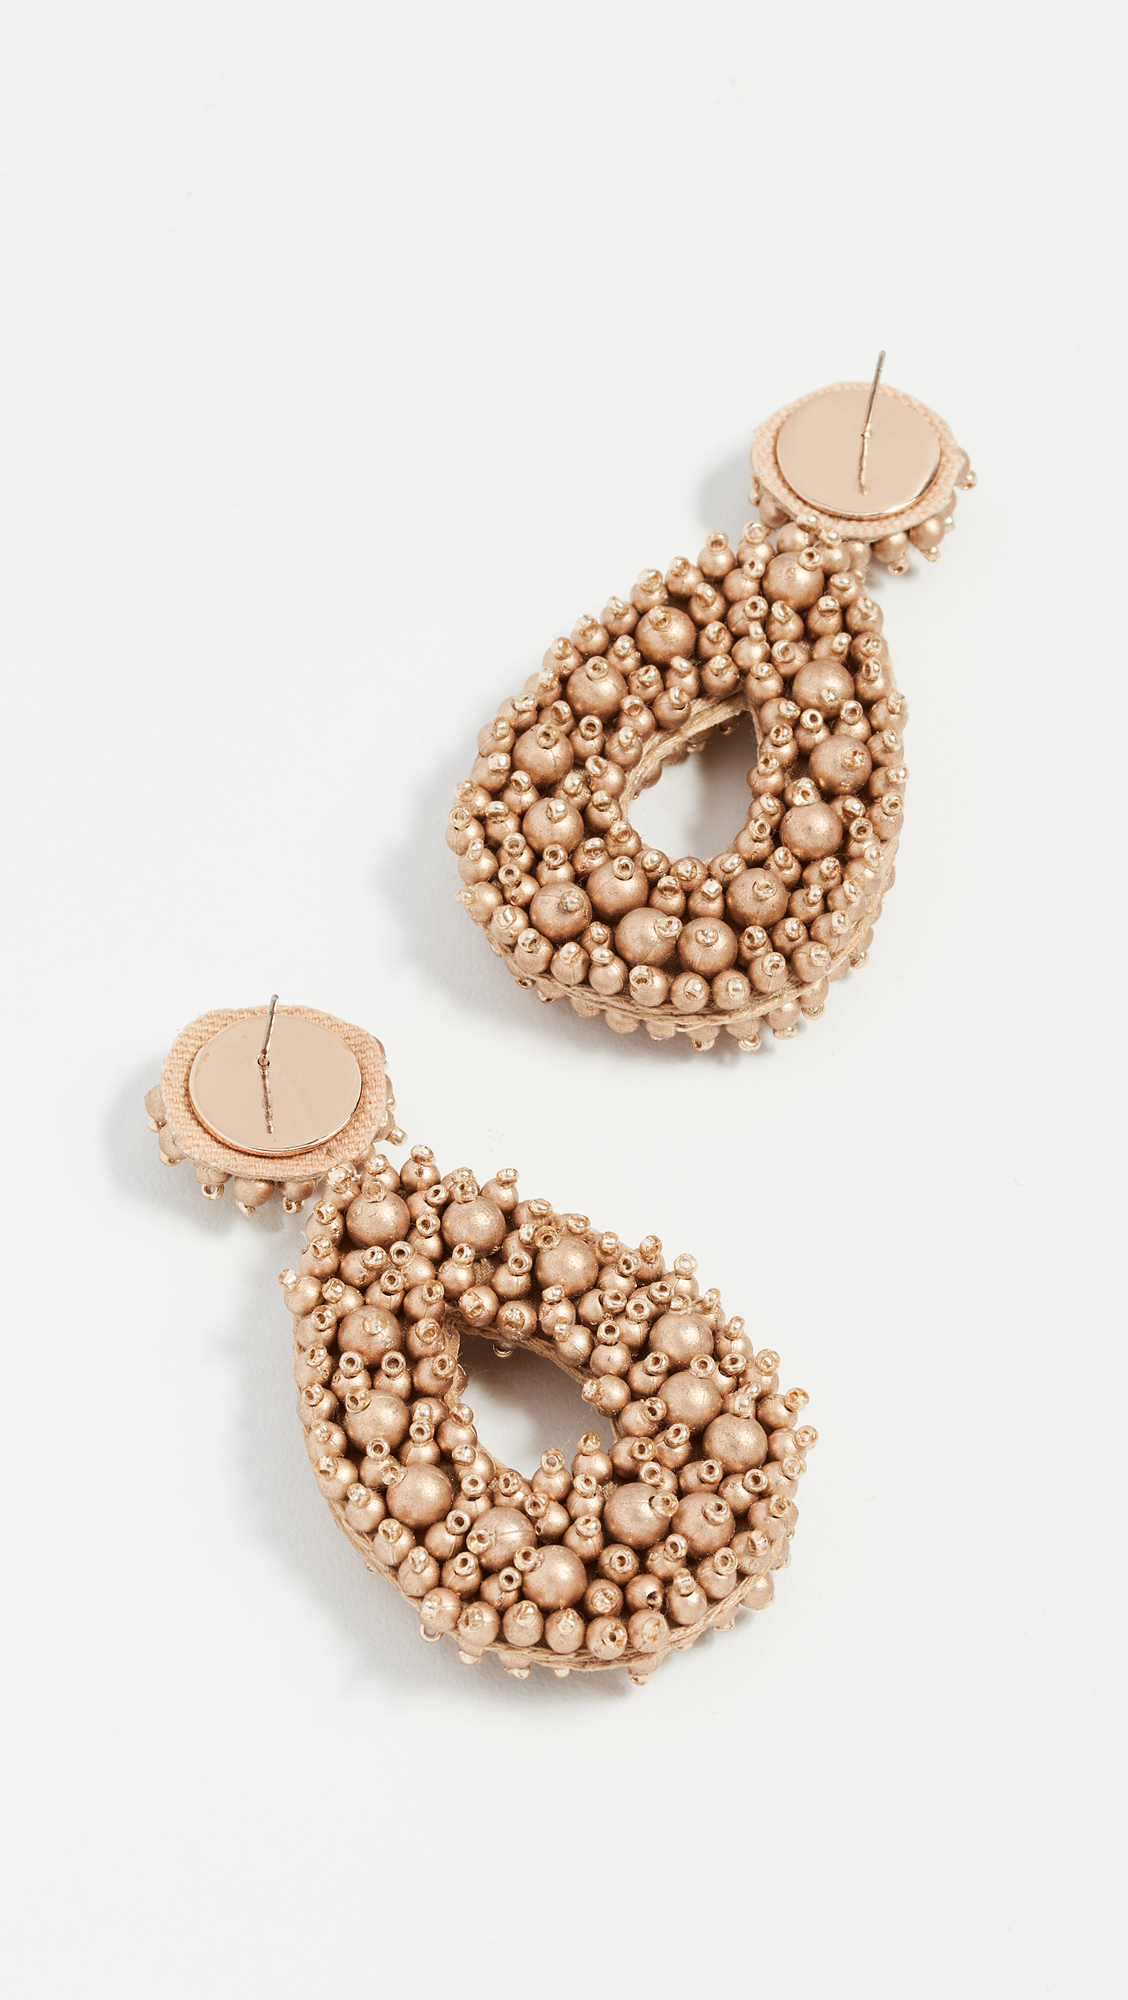 BaubleBar Fully Beaded Oval Earrings SuVTe0s3U